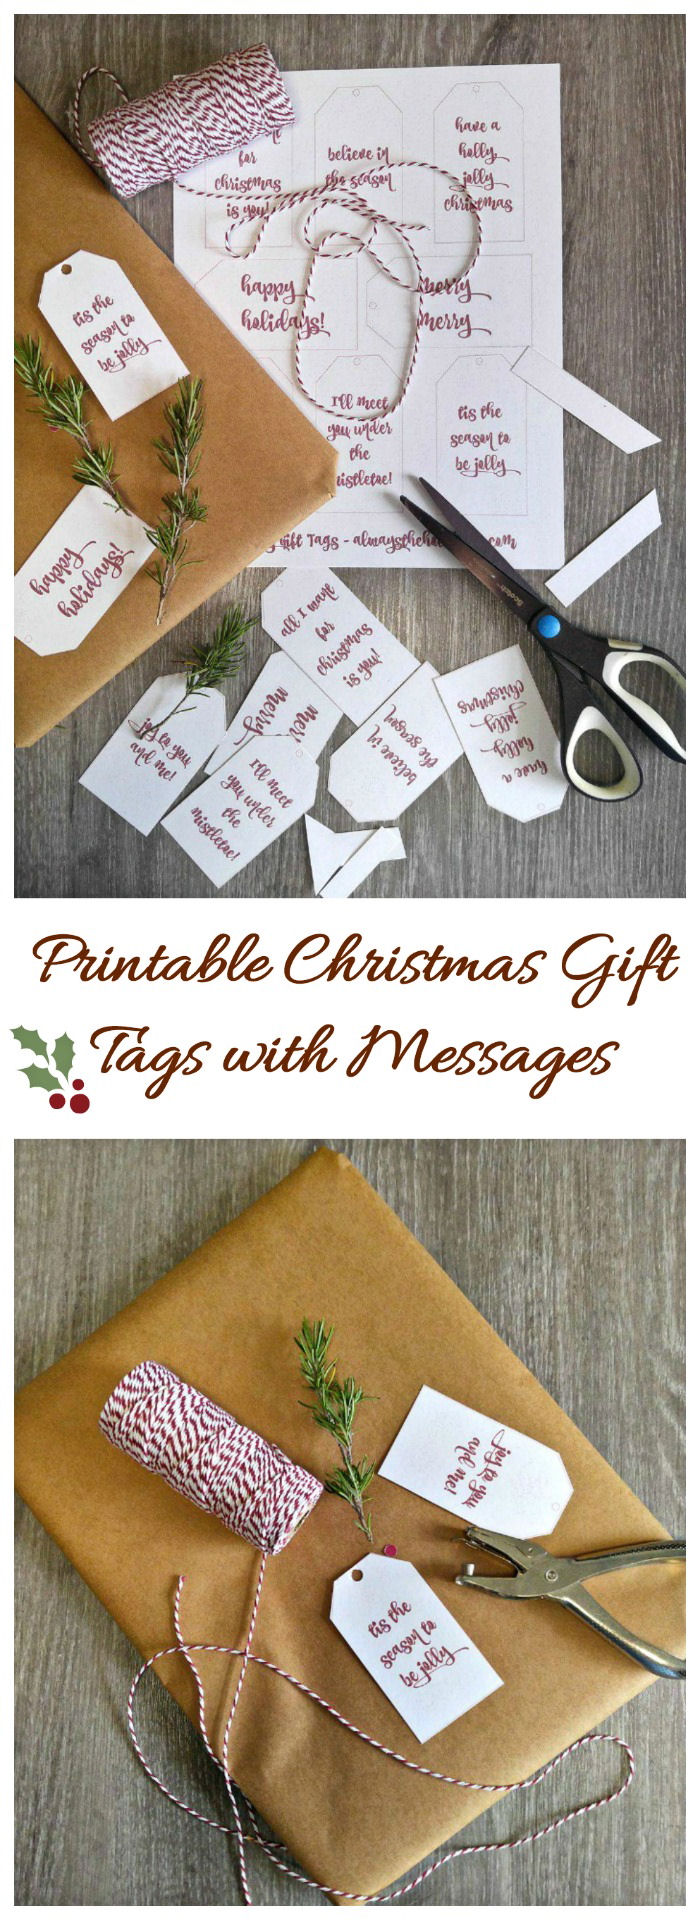 These Printable Christmas Gift Tags will give your holiday package a personal touch #gifttags #freeprintables